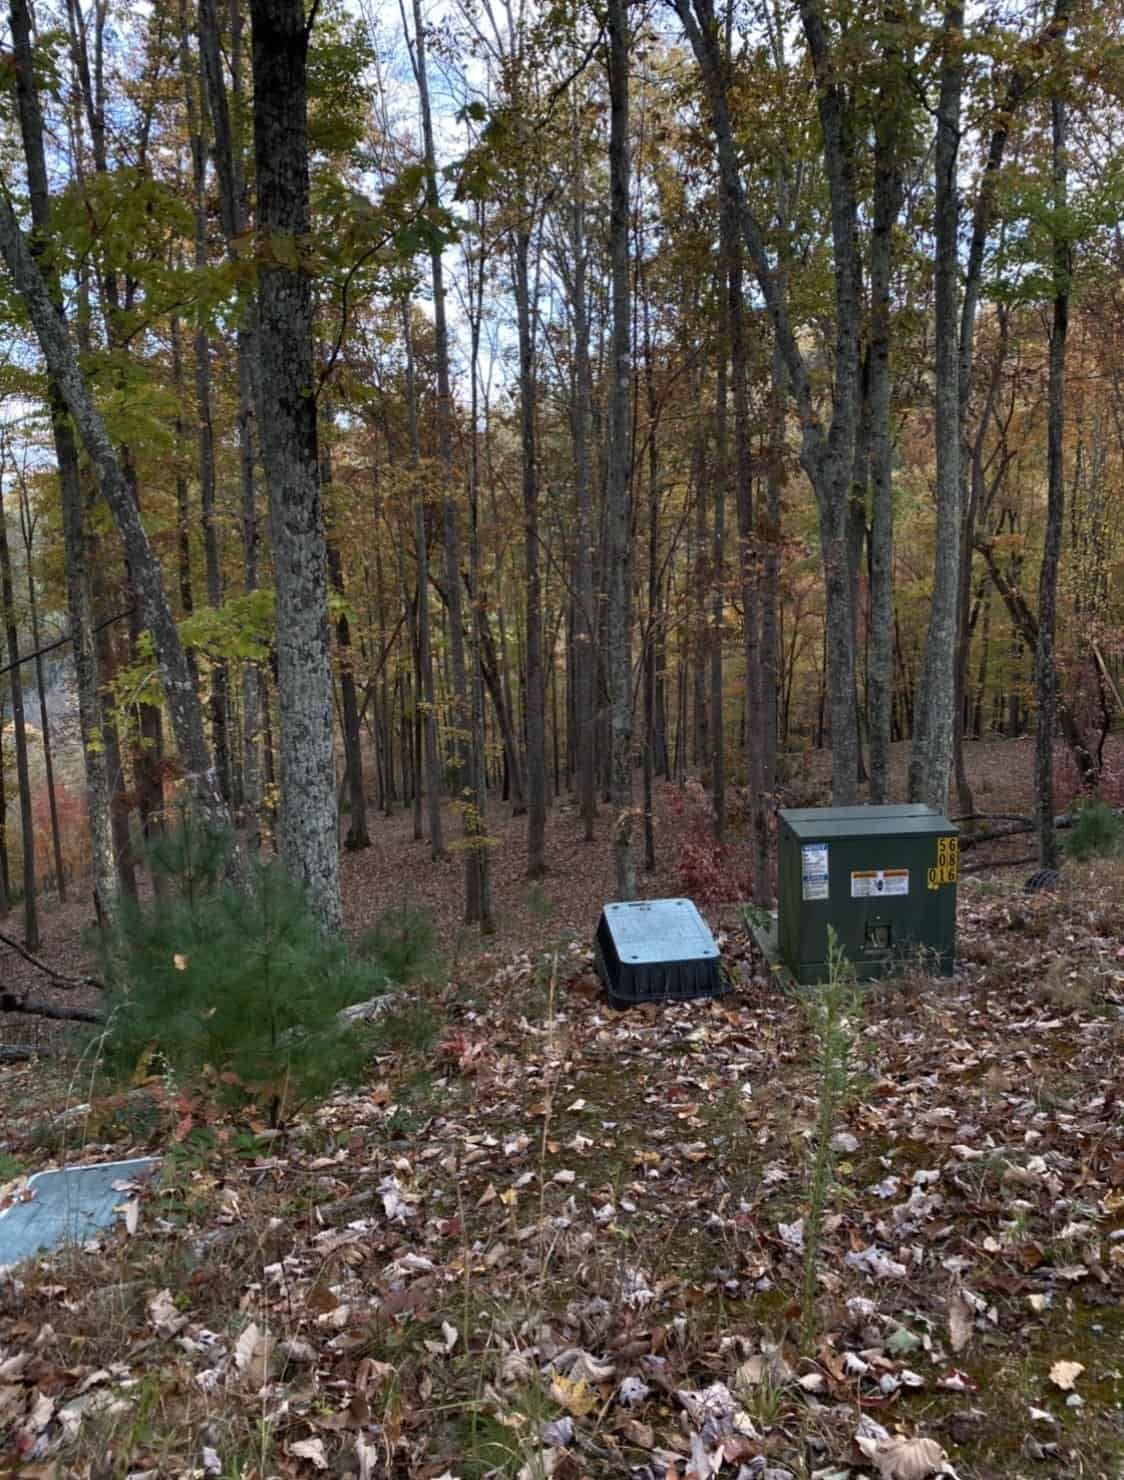 wooded area with leaves on the ground